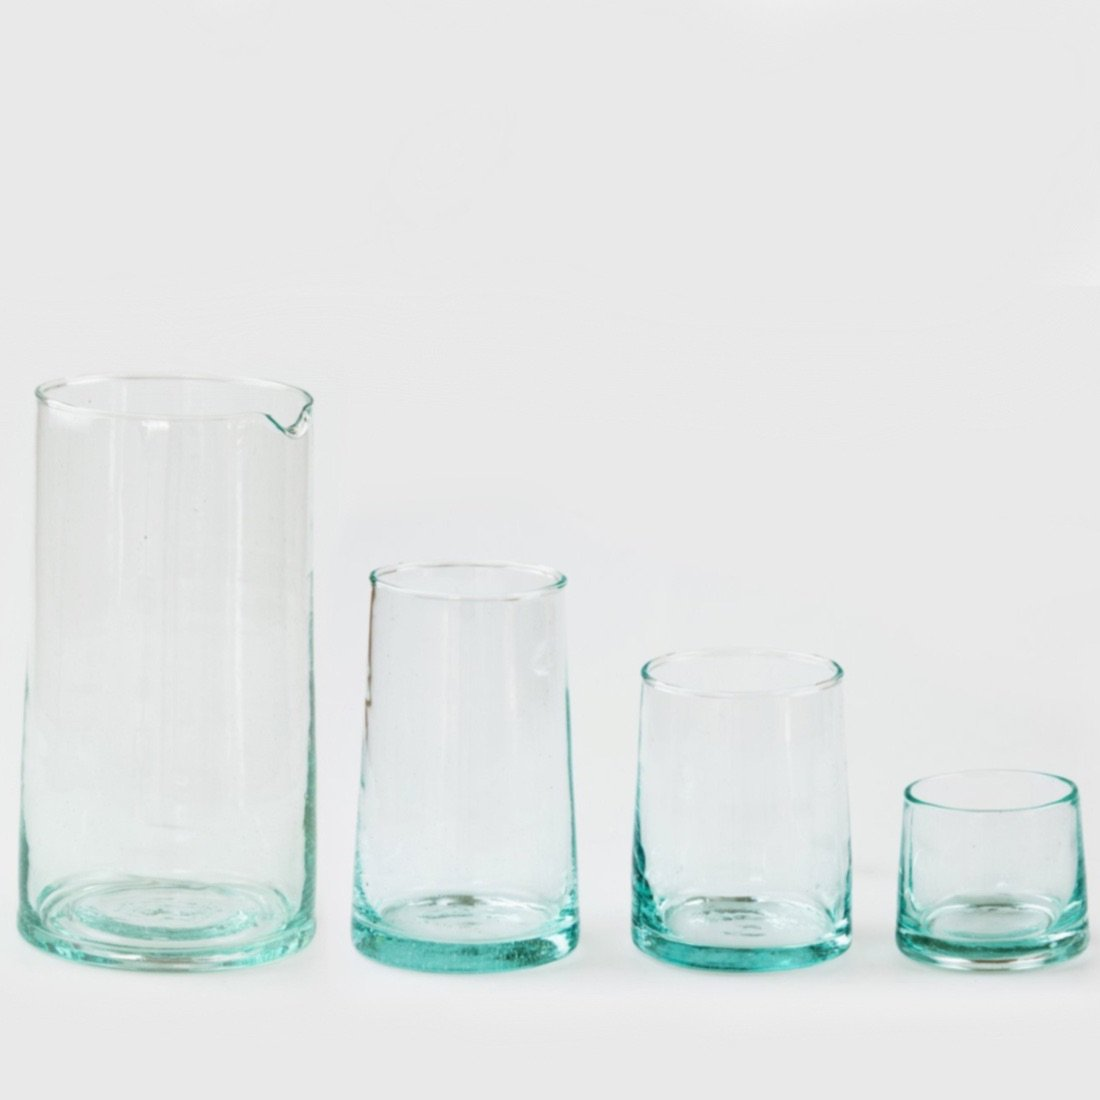 Handblown Recycled Glassware